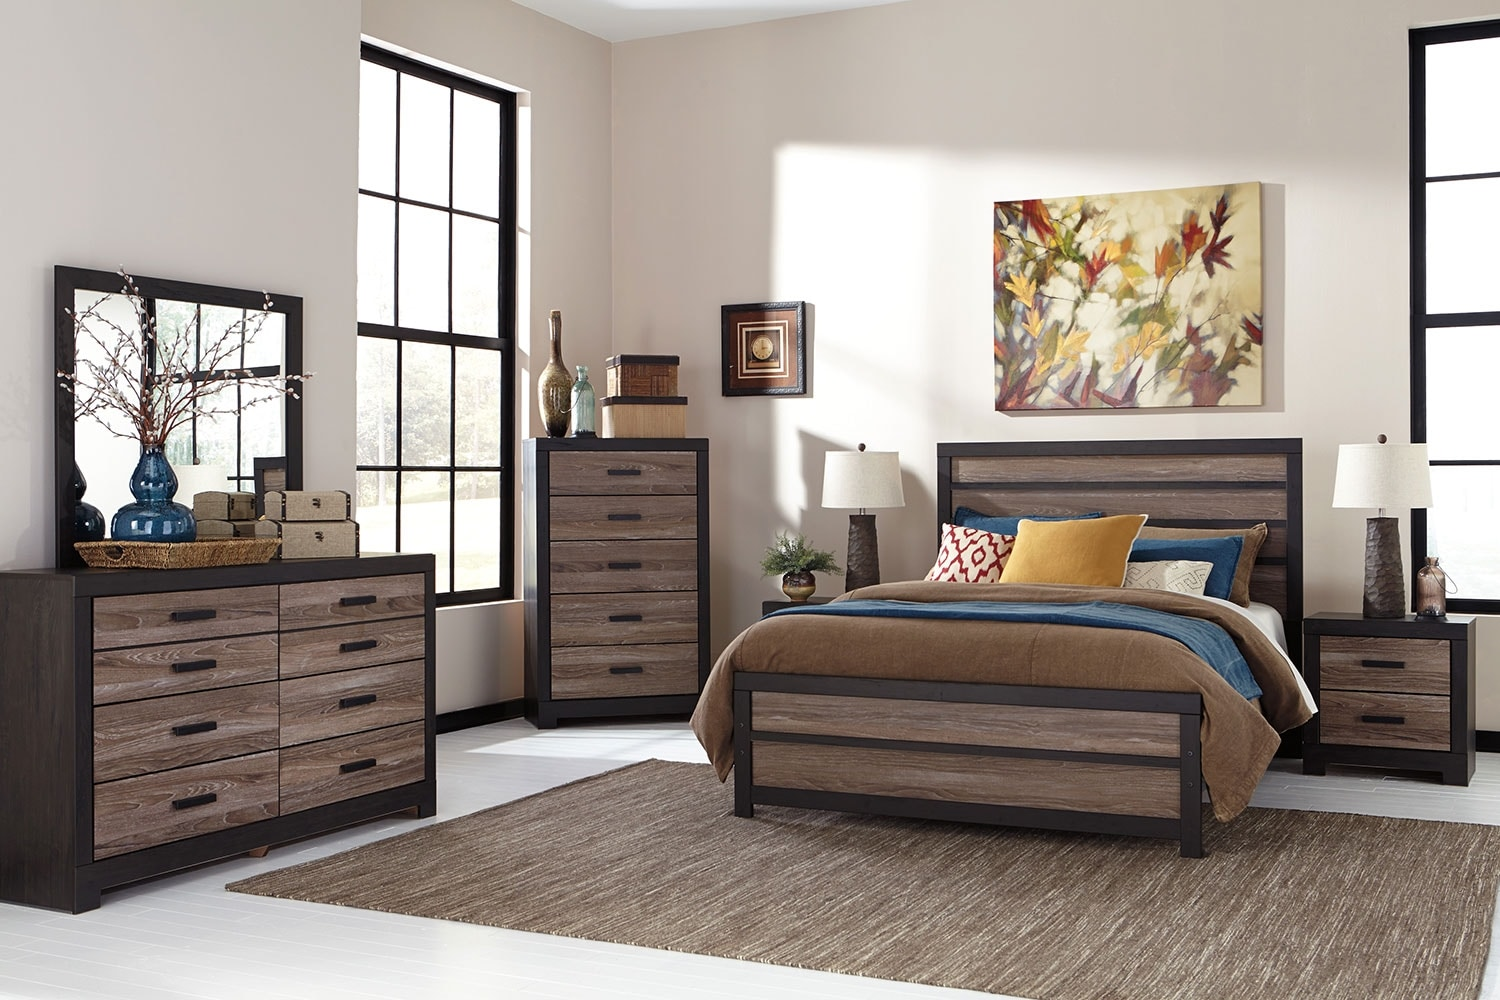 Harlinton 8 piece queen bedroom package the brick for Bedroom furniture packages